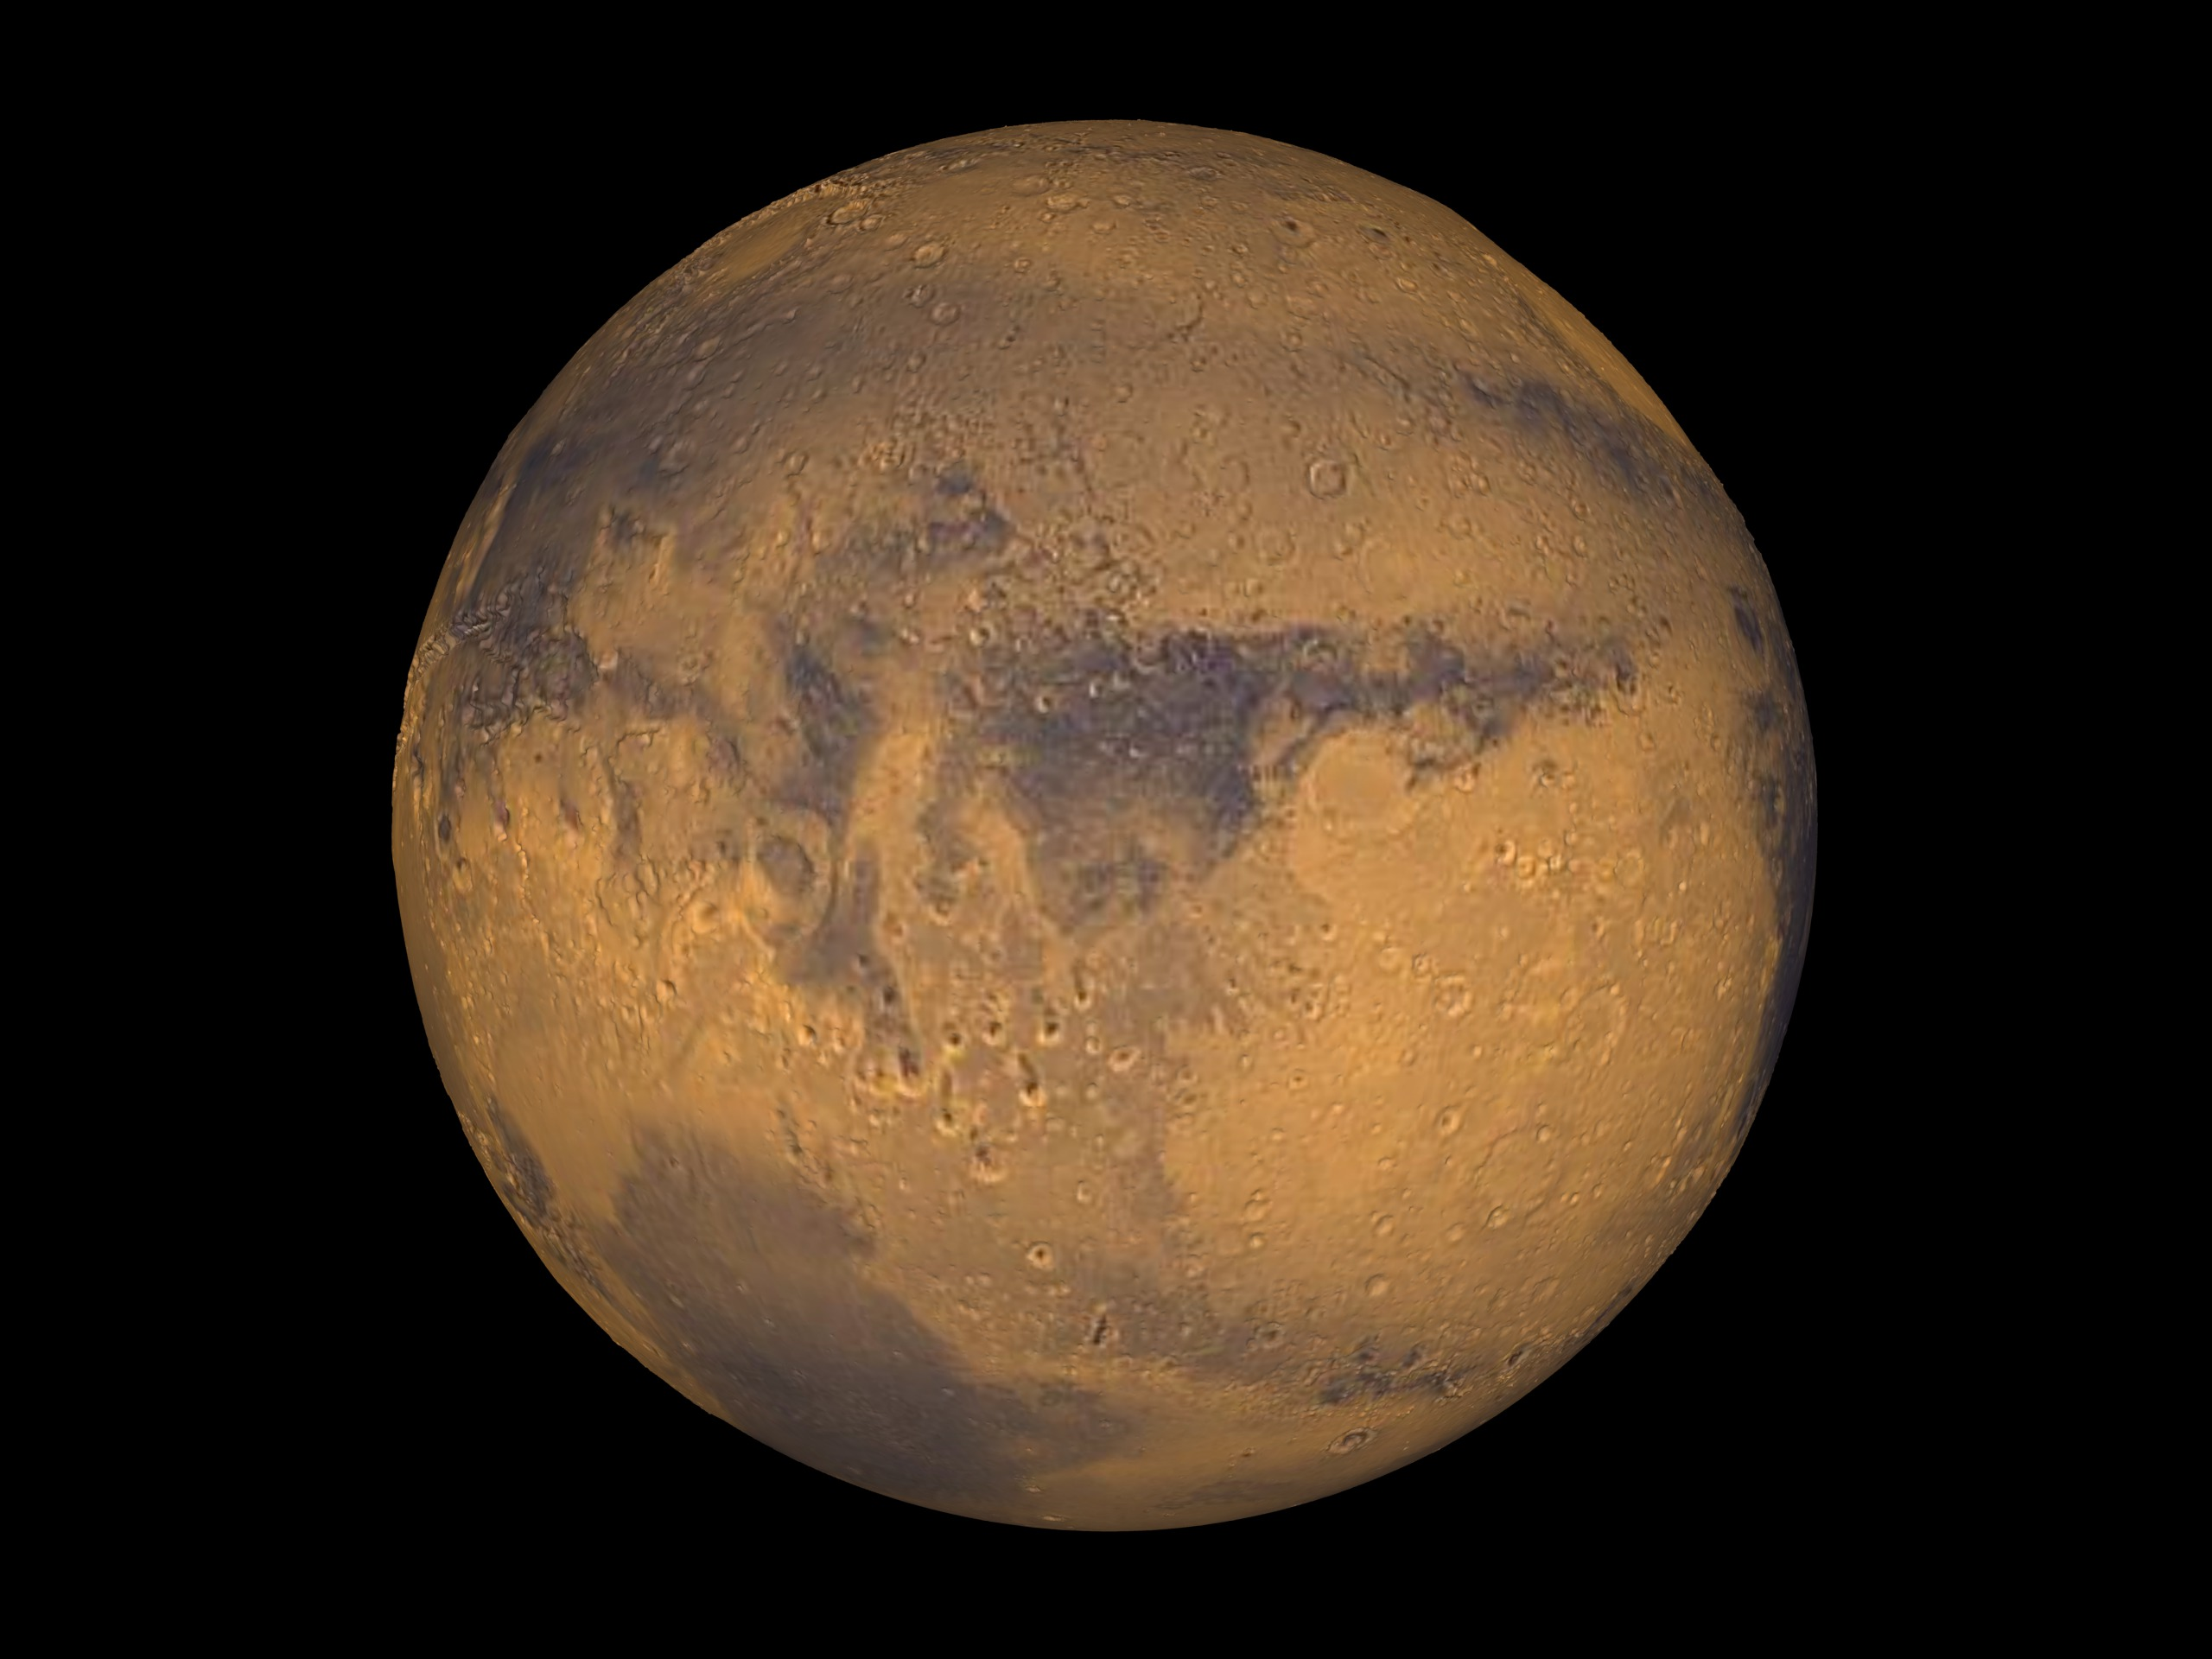 NASA Announcement: Mars Curiosity Rover News Conference Streaming ...